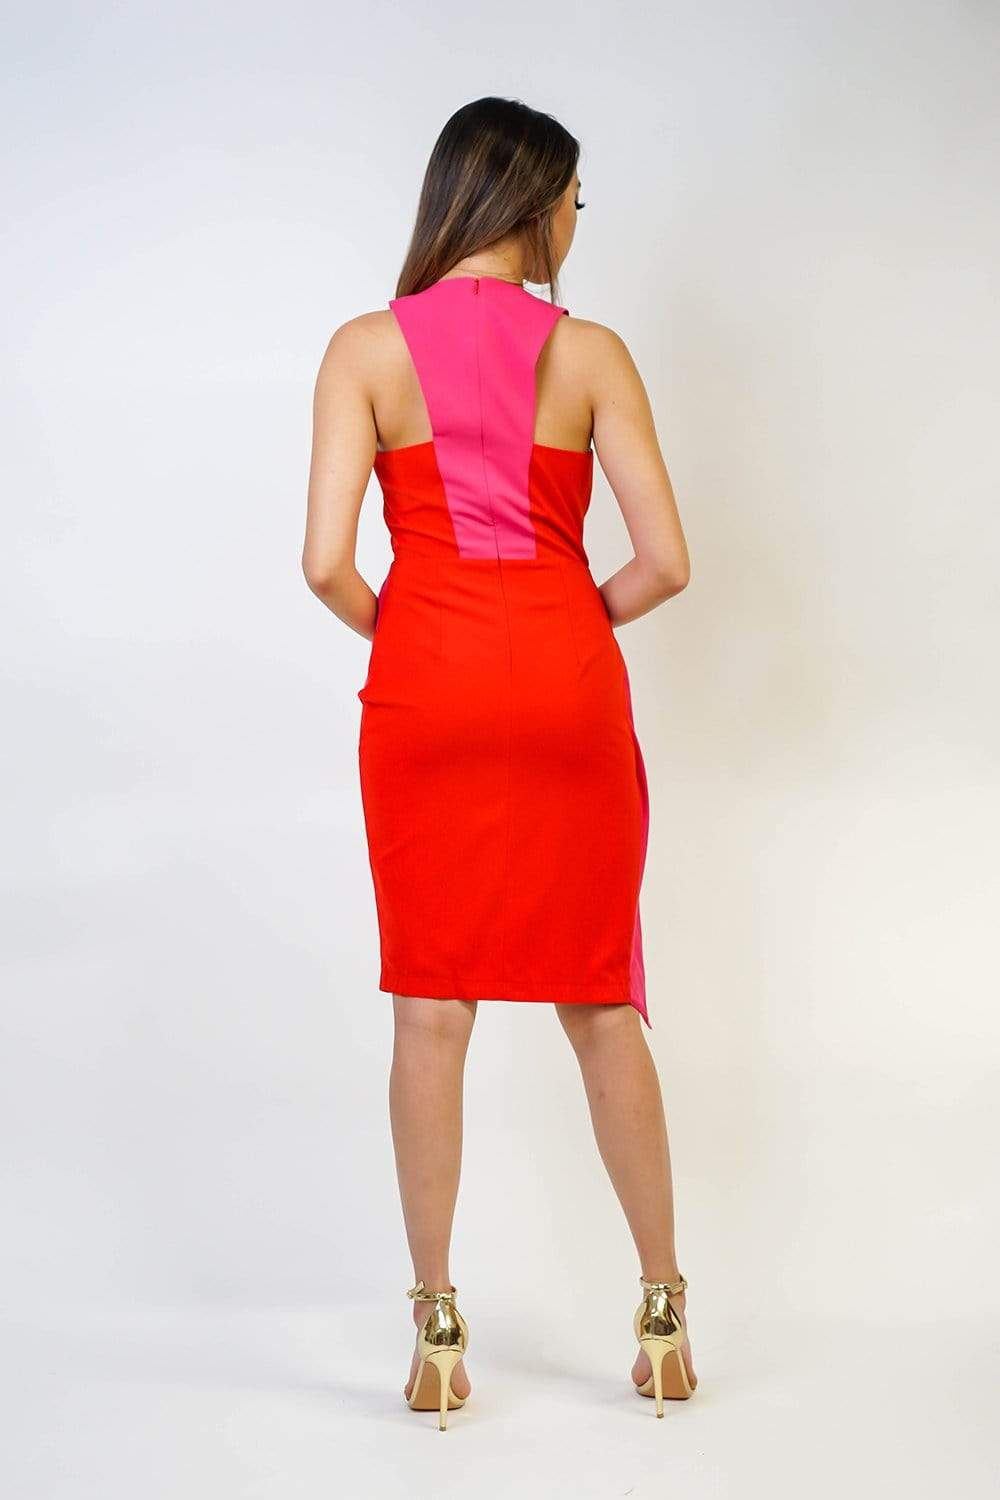 DRESS Pink/ Red Color Block Drape Cocktail Dress - Chloe Dao